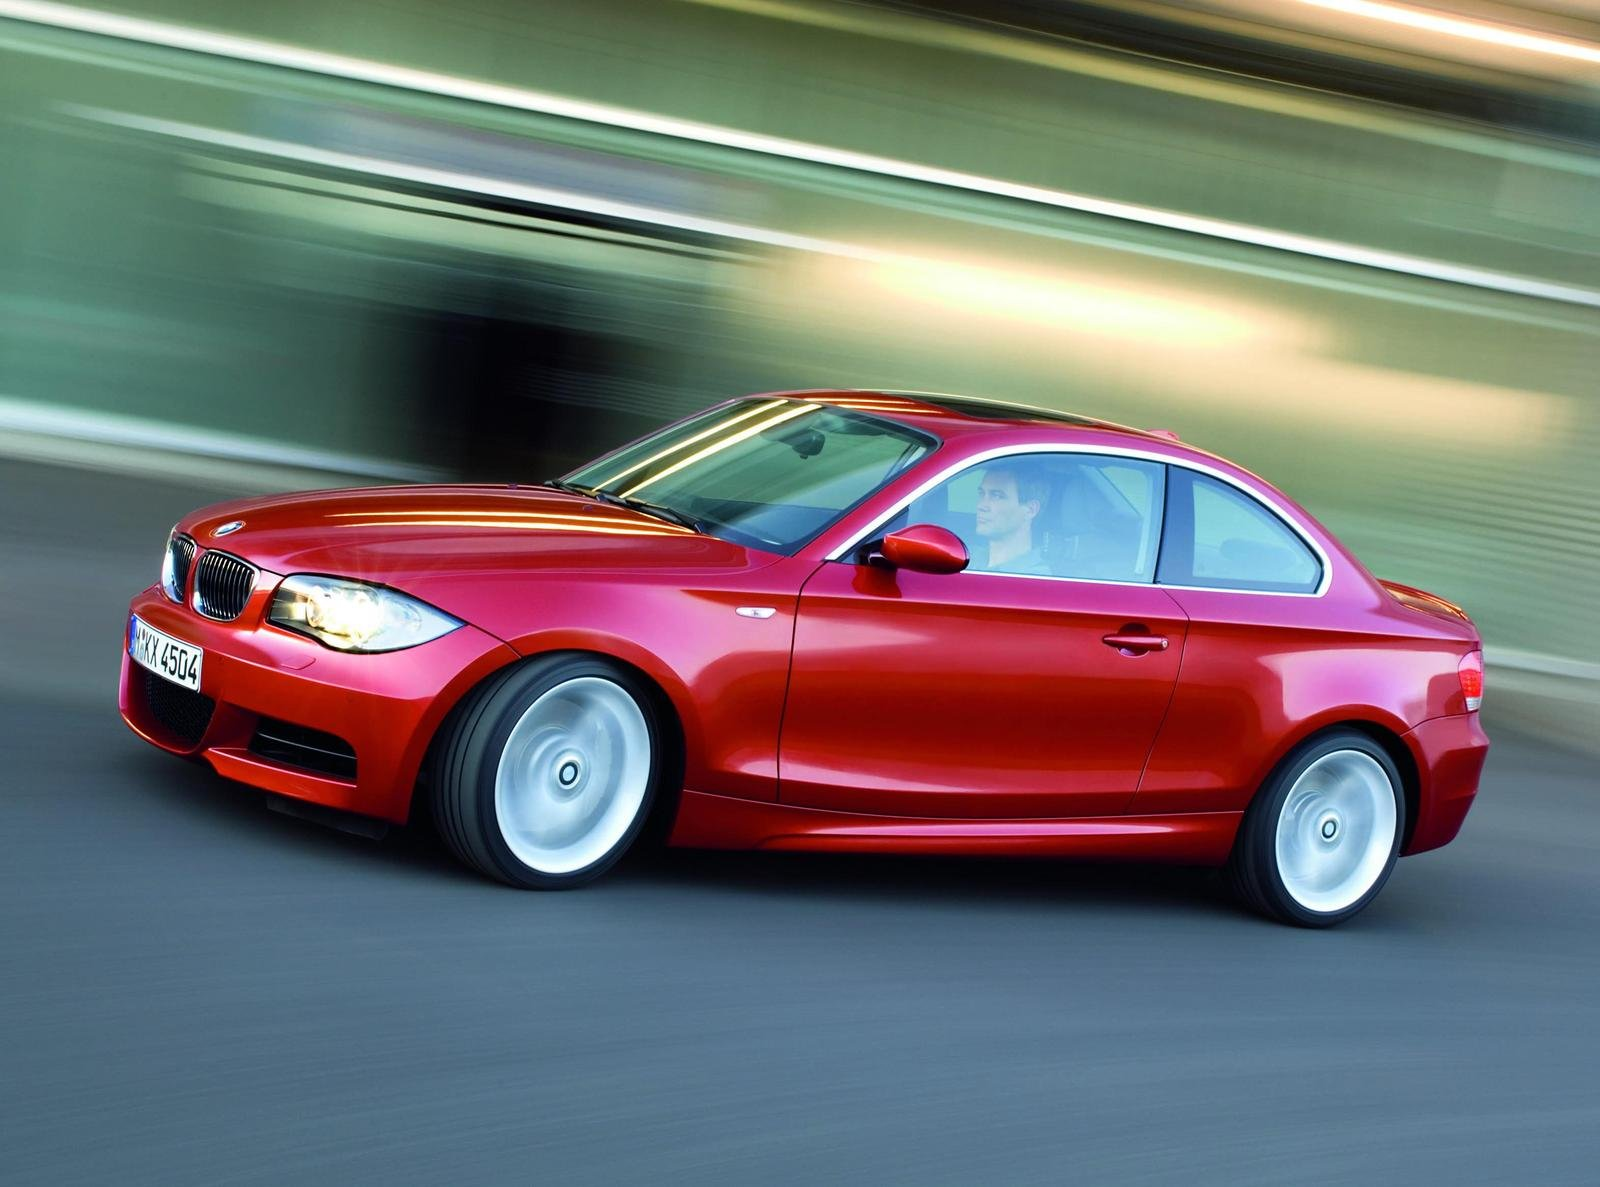 bmw 1 series coupe makes us debut pricing announced news. Black Bedroom Furniture Sets. Home Design Ideas